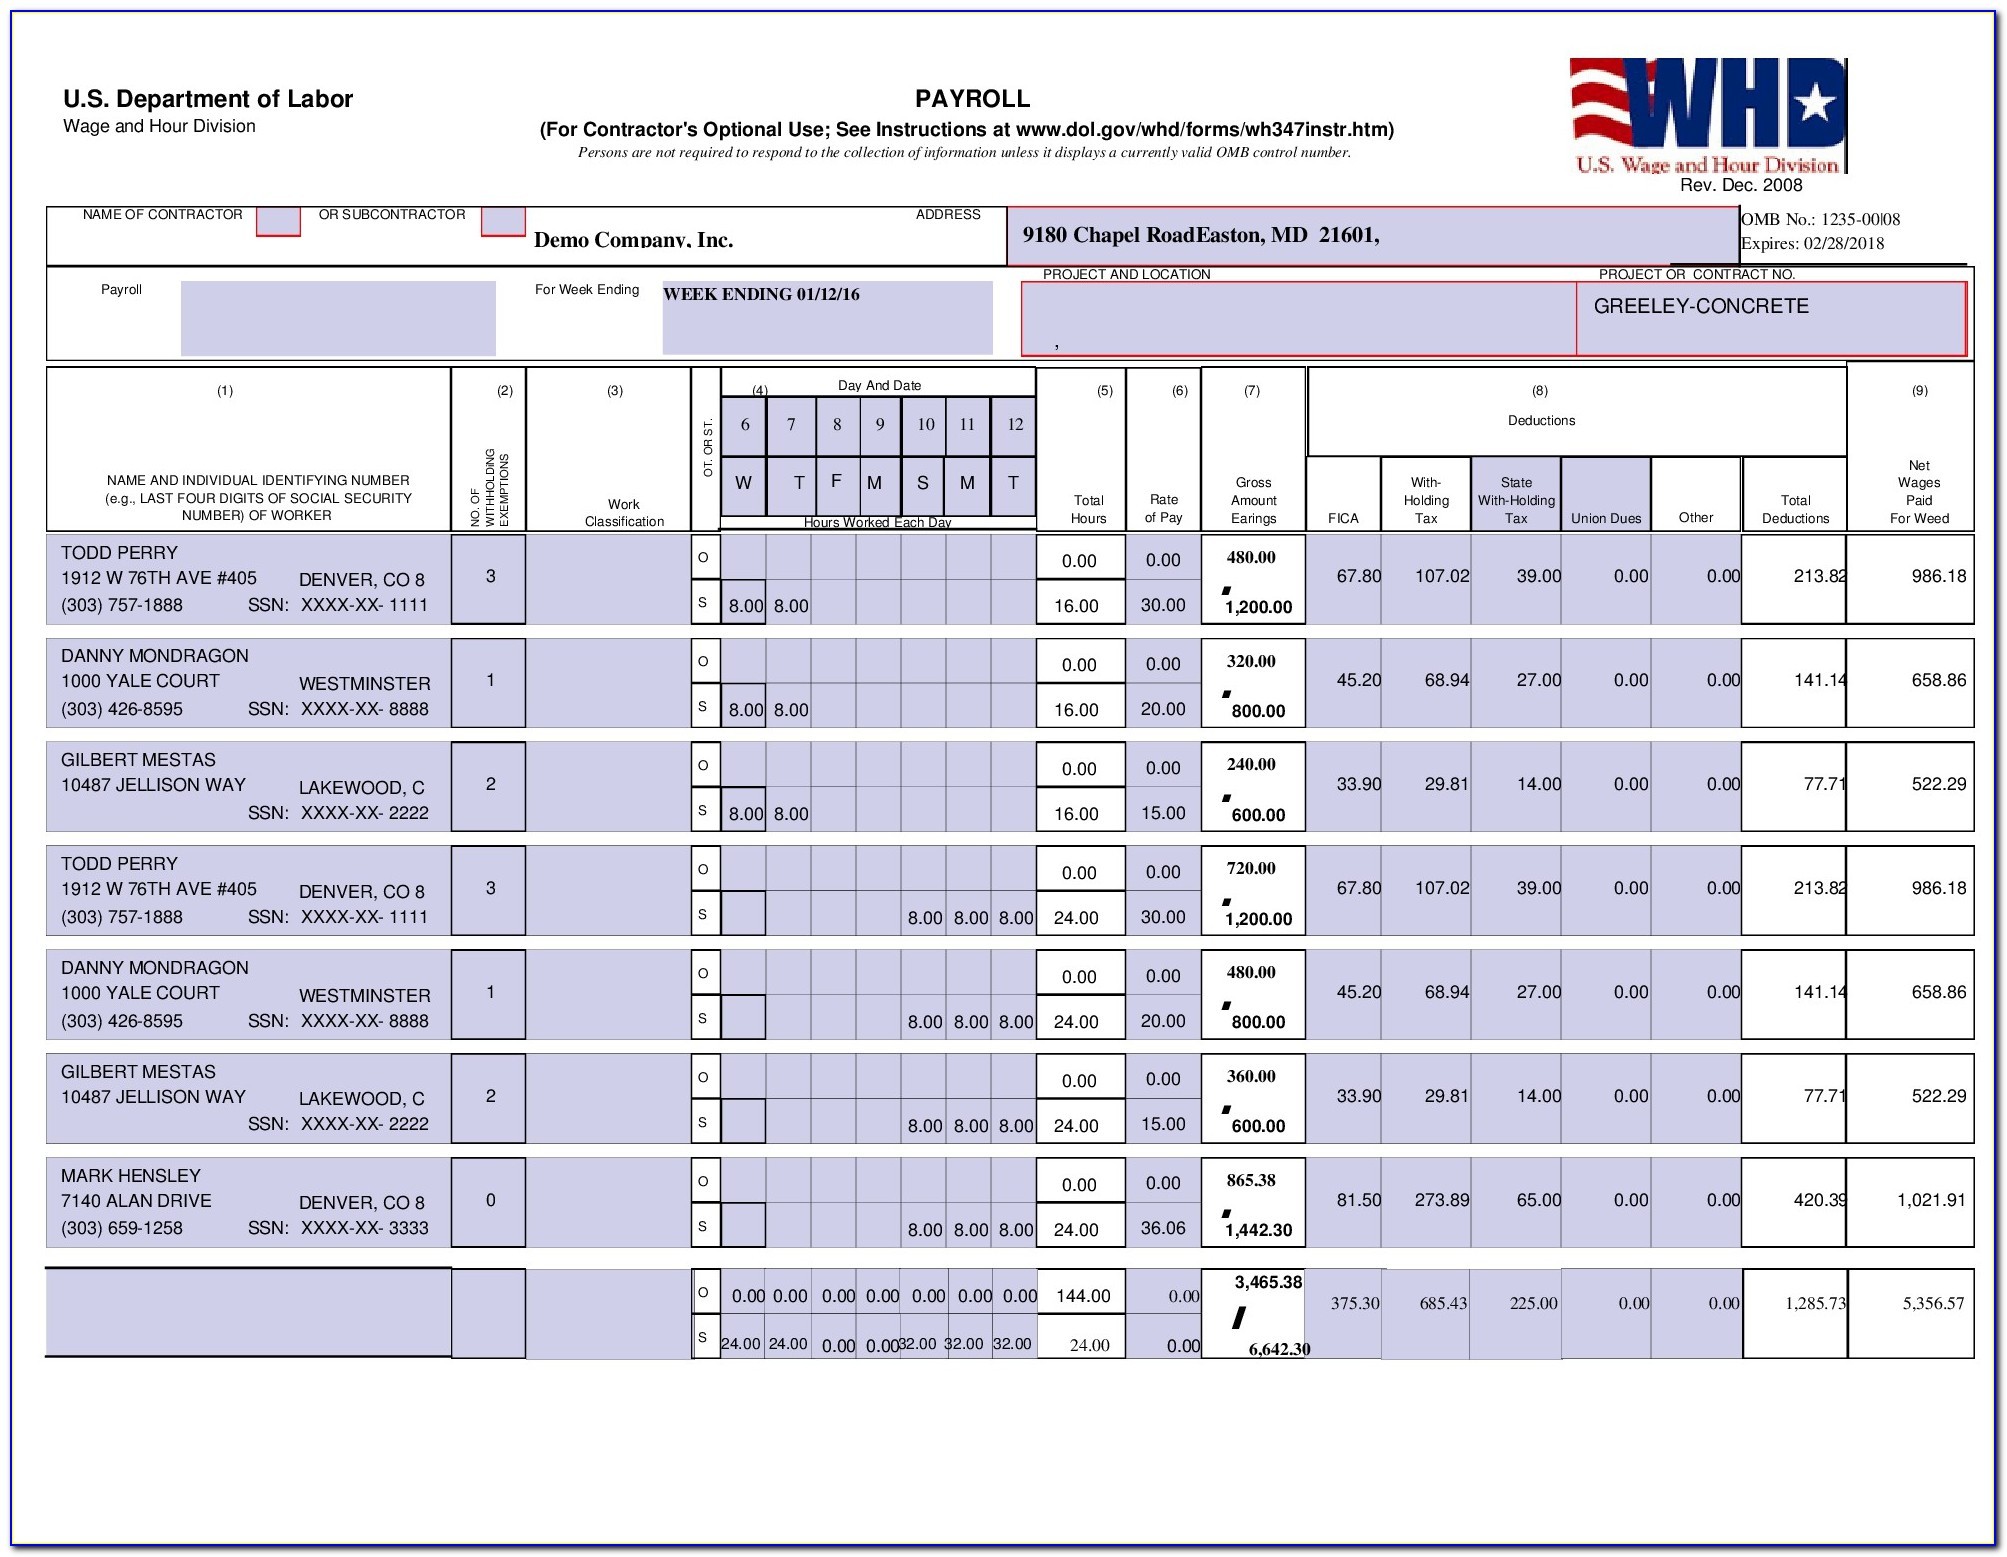 Certified Payroll Form Wh 347